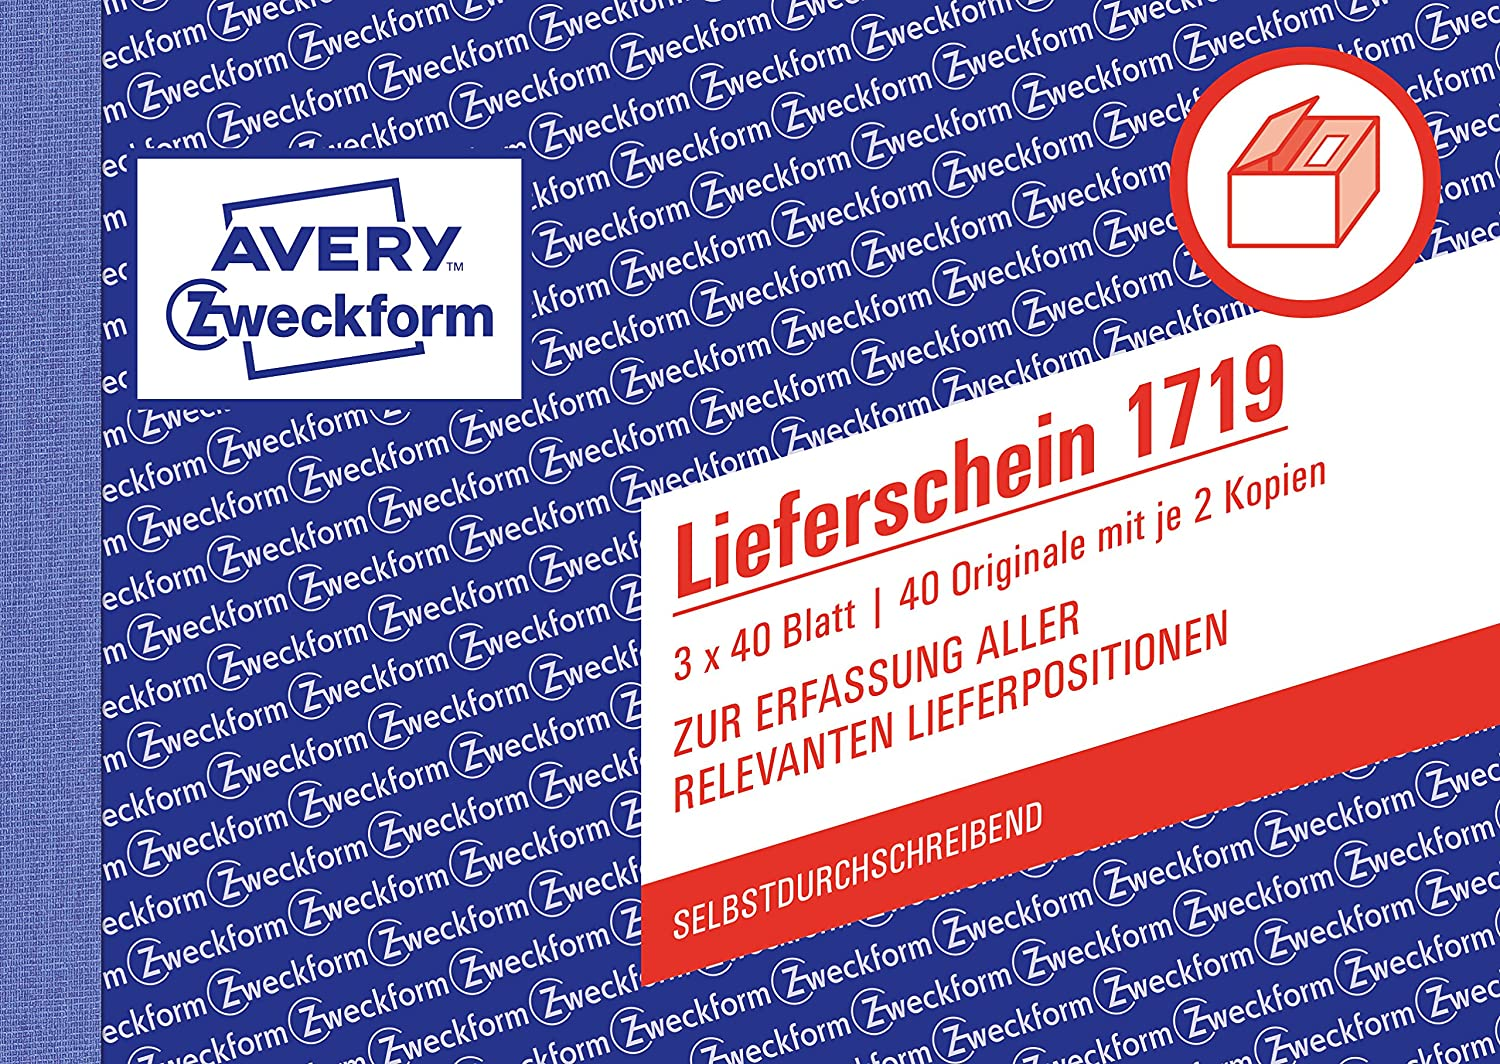 Avery Zweckform 1719 Delivery Notes for Austria DIN A6 quer – 3 x 40 Sheets, White, Yellow, Pink